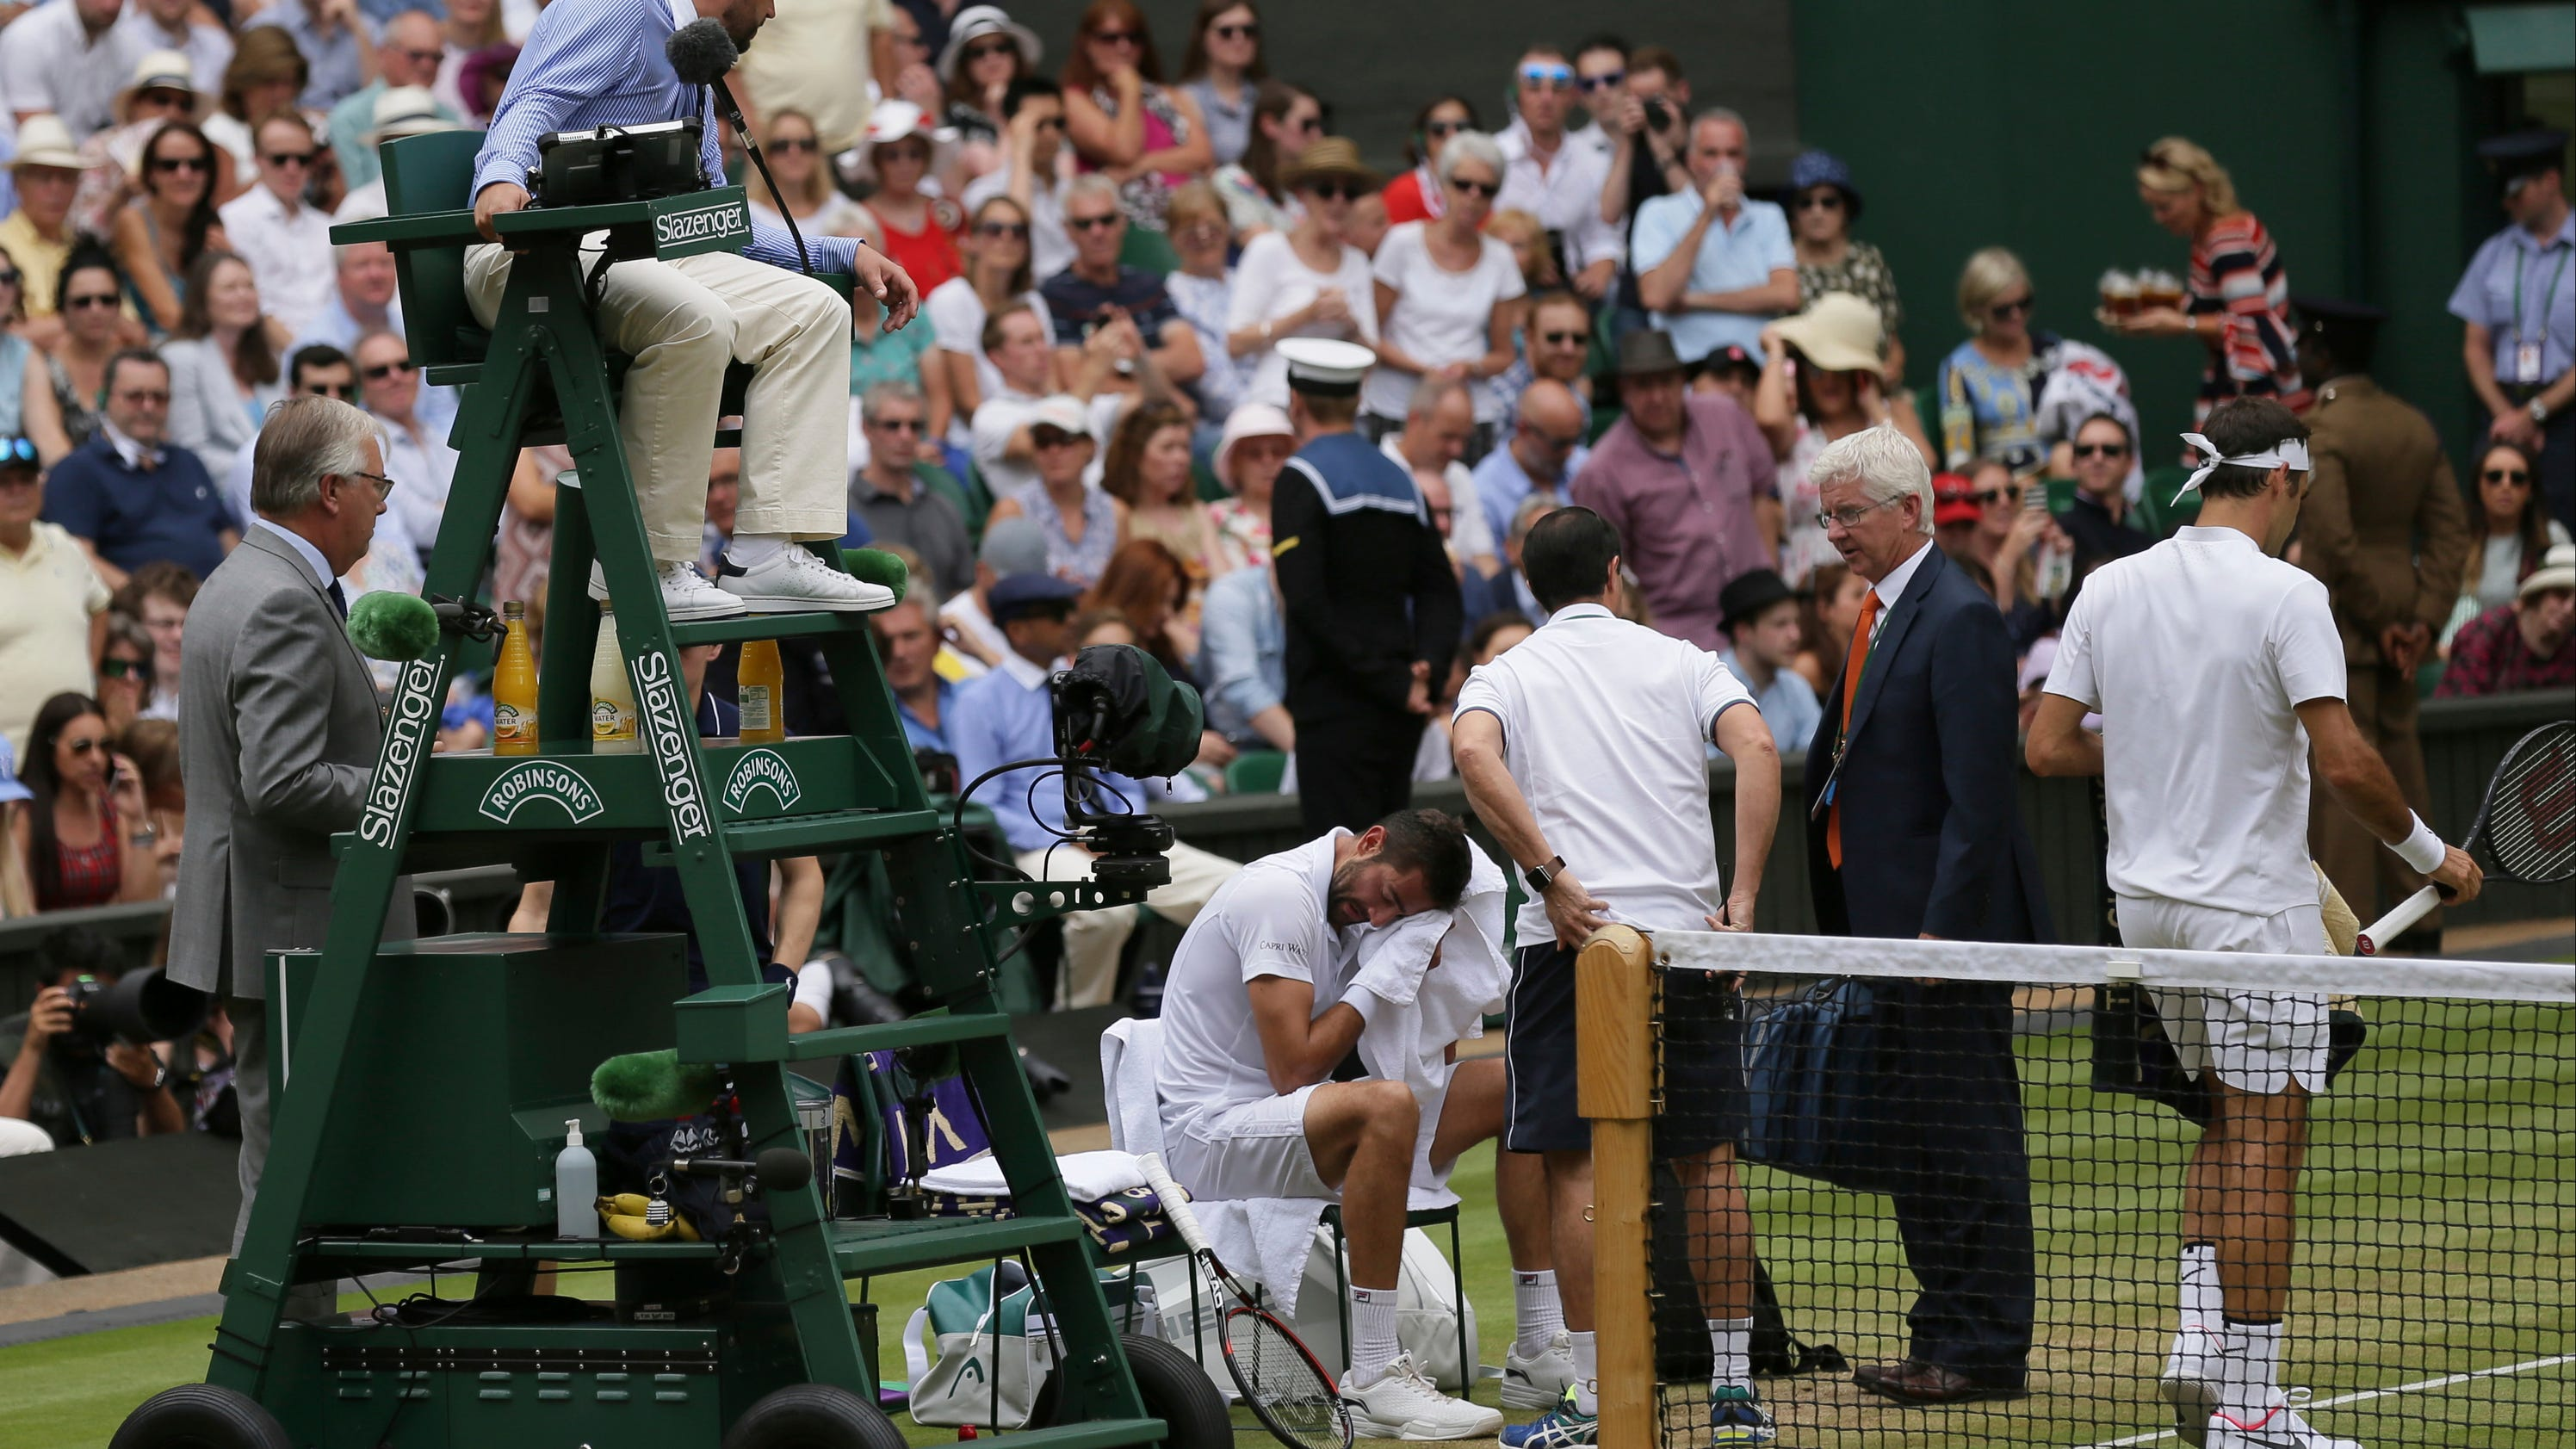 Cilic in pain and tears in Wimbledon final against Federer